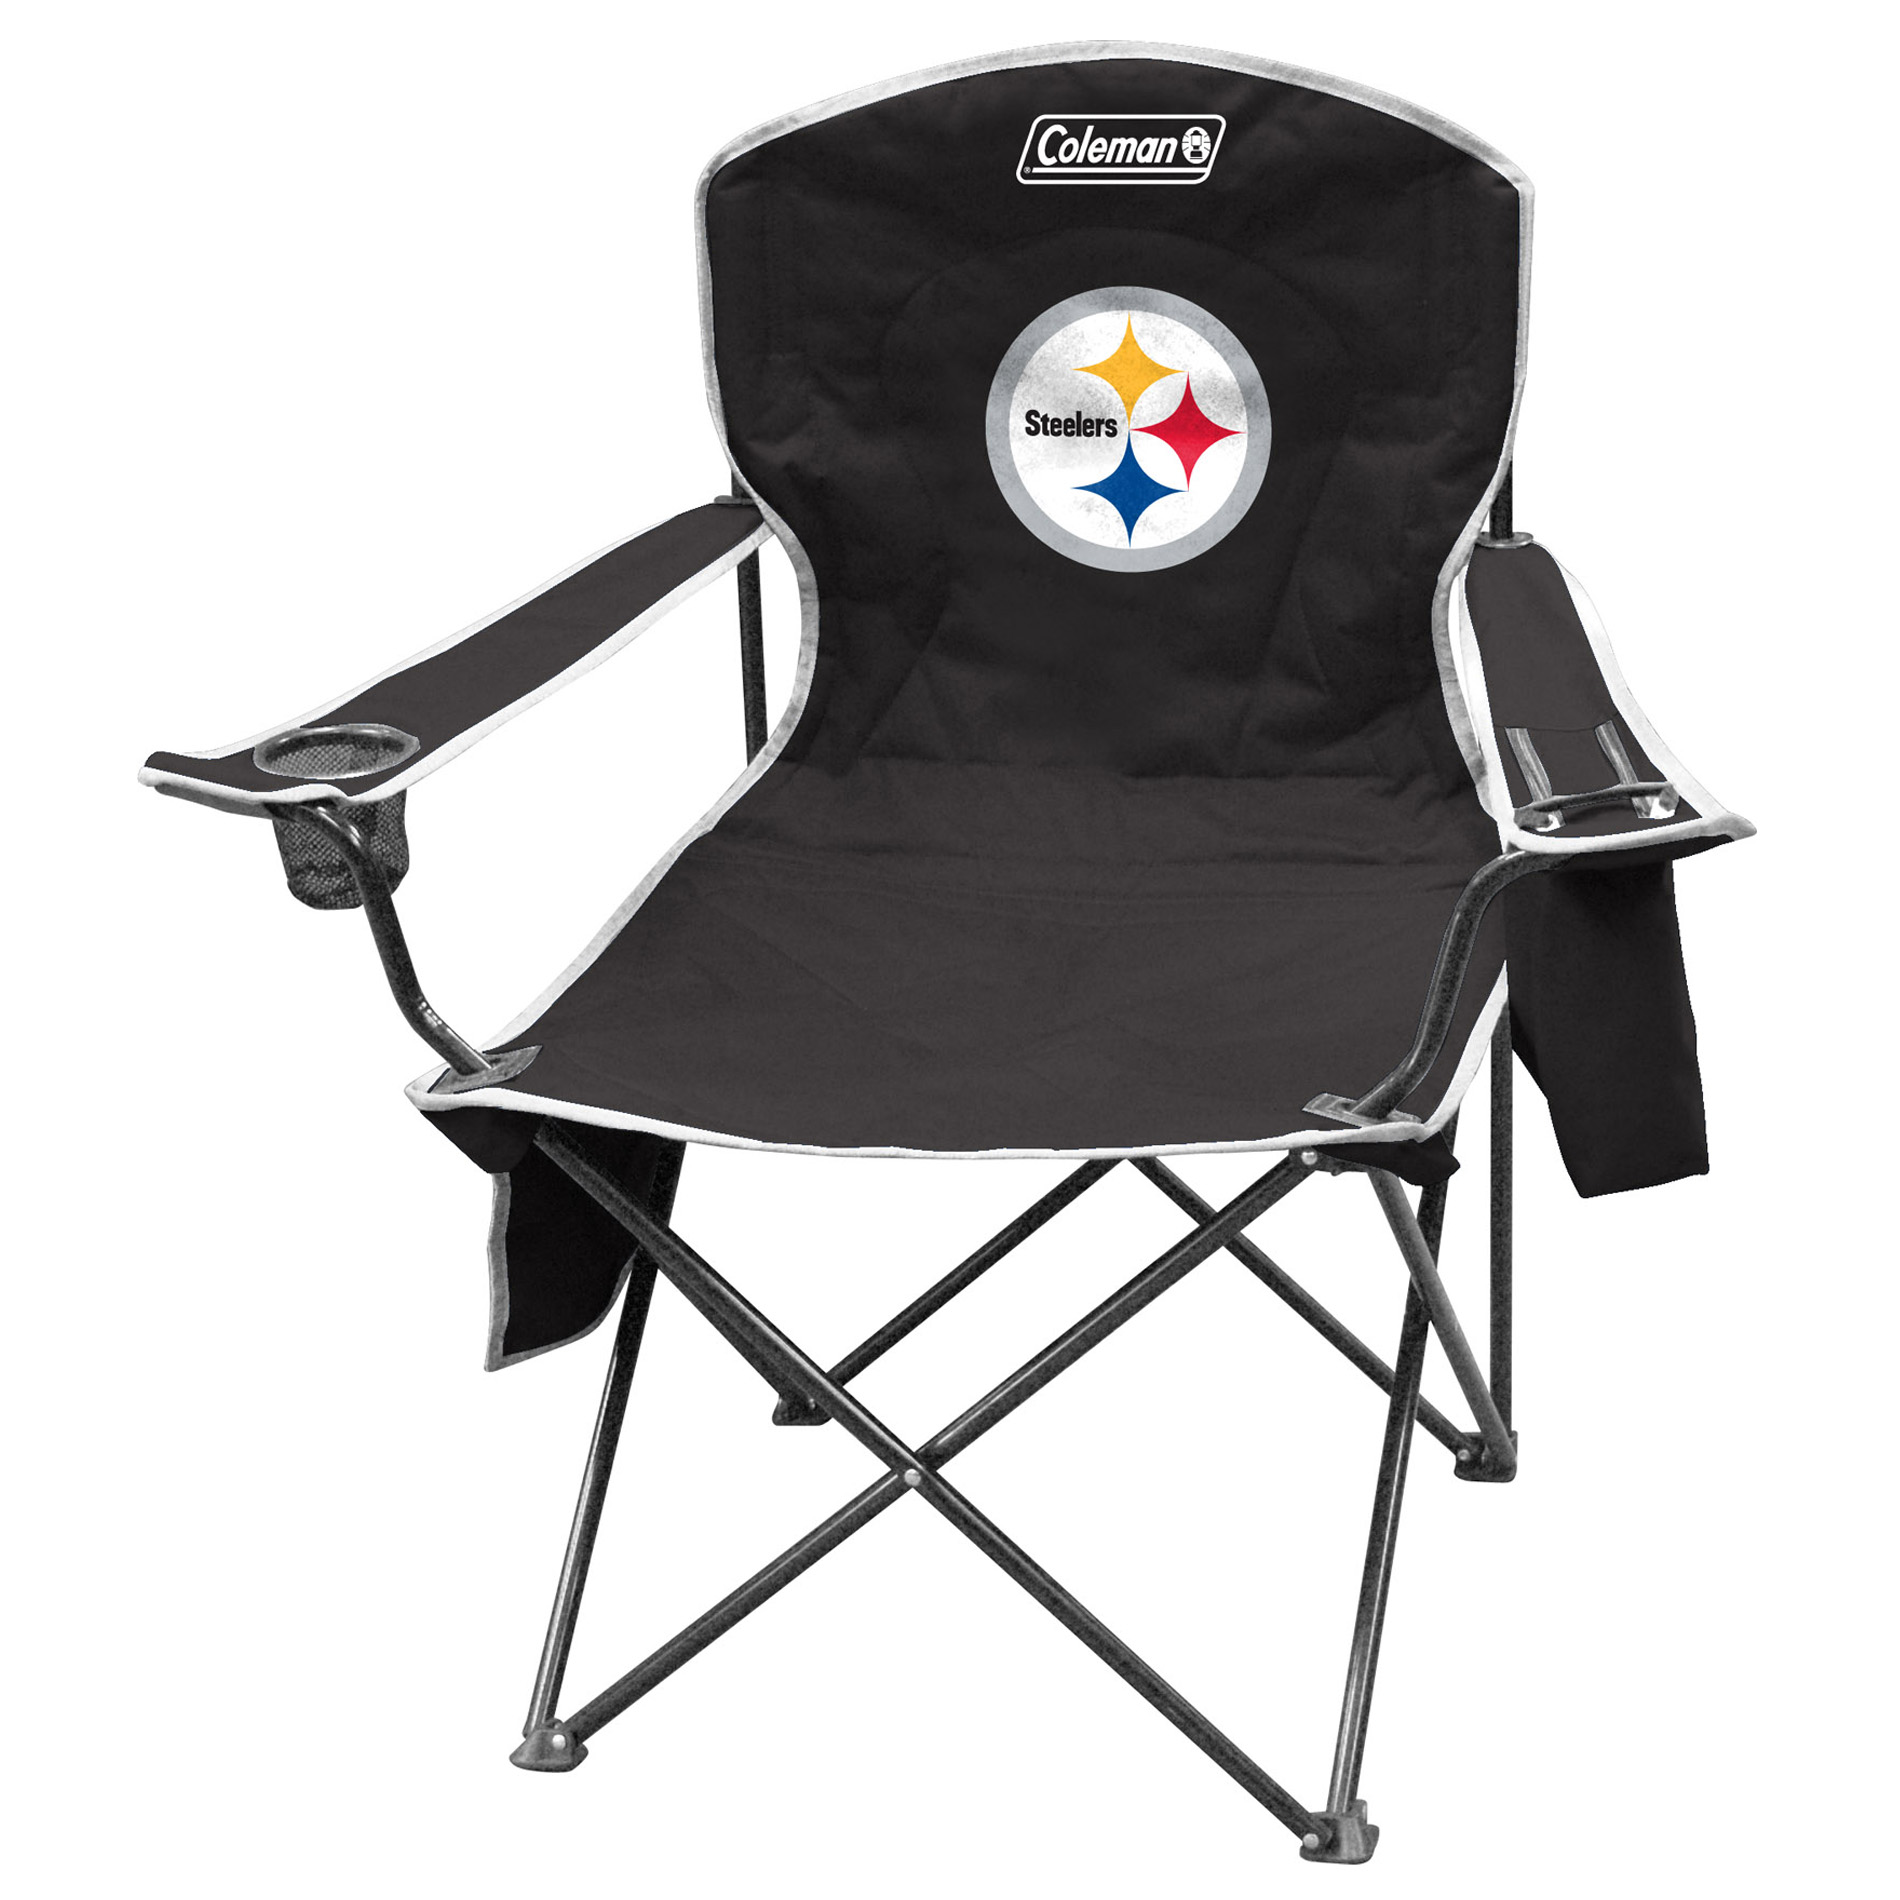 Tailgate Chairs Jarden Pittsburgh Steelers Xl Cooler Quad Chair Fitness